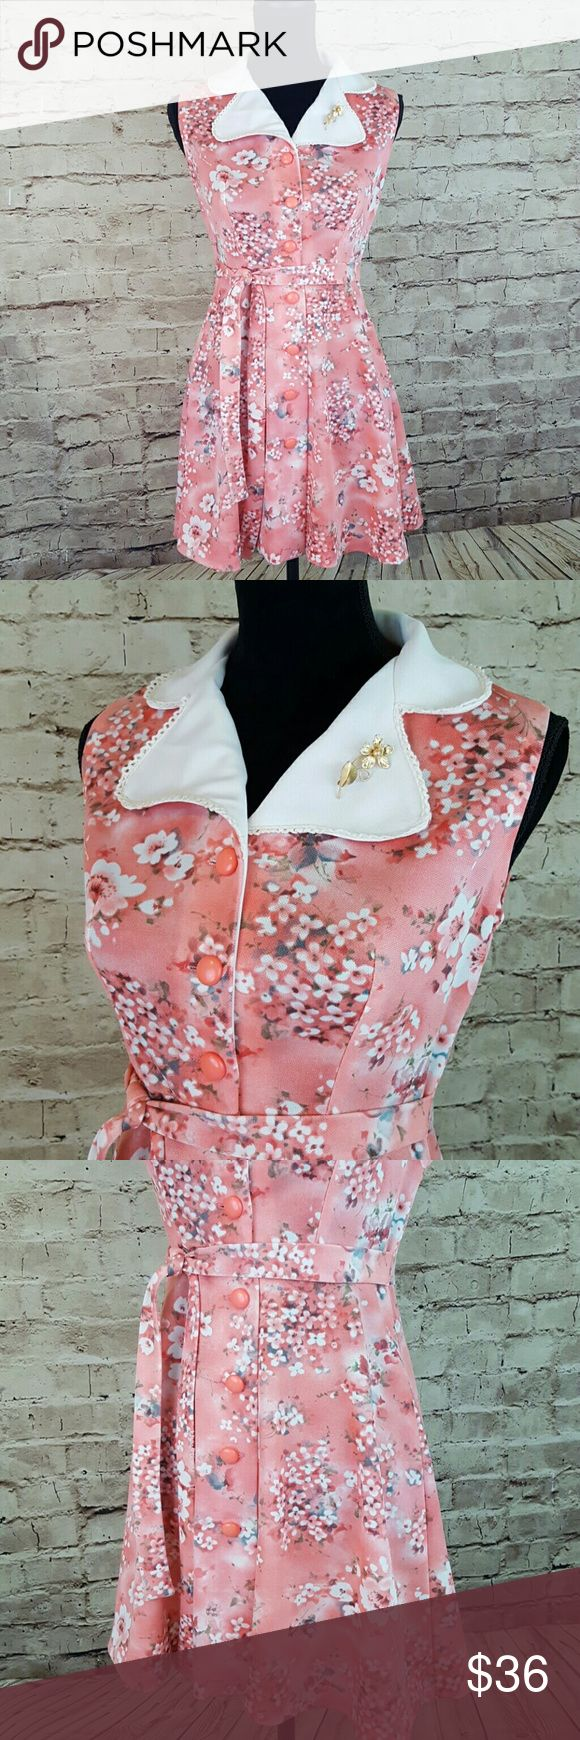 "Vintage Floral Dress 1970's Salmon pink with floral motif buttons all of the way uup the front. Attatched belt ties either in front or in back. Iconic collar with rick rack epitomizes the era as does the thick polyester knit which gives a nice drape. Terrific condition. Size is vintage 11 which is alot smaller than todays equivelent, please see measurements. Love this little ""Brady"" dress! I ship fast. Shoulder to shoulder 13"" Armpit to armpit 17"" Waist 14.5"" Collar to hem 33"" Dresses"